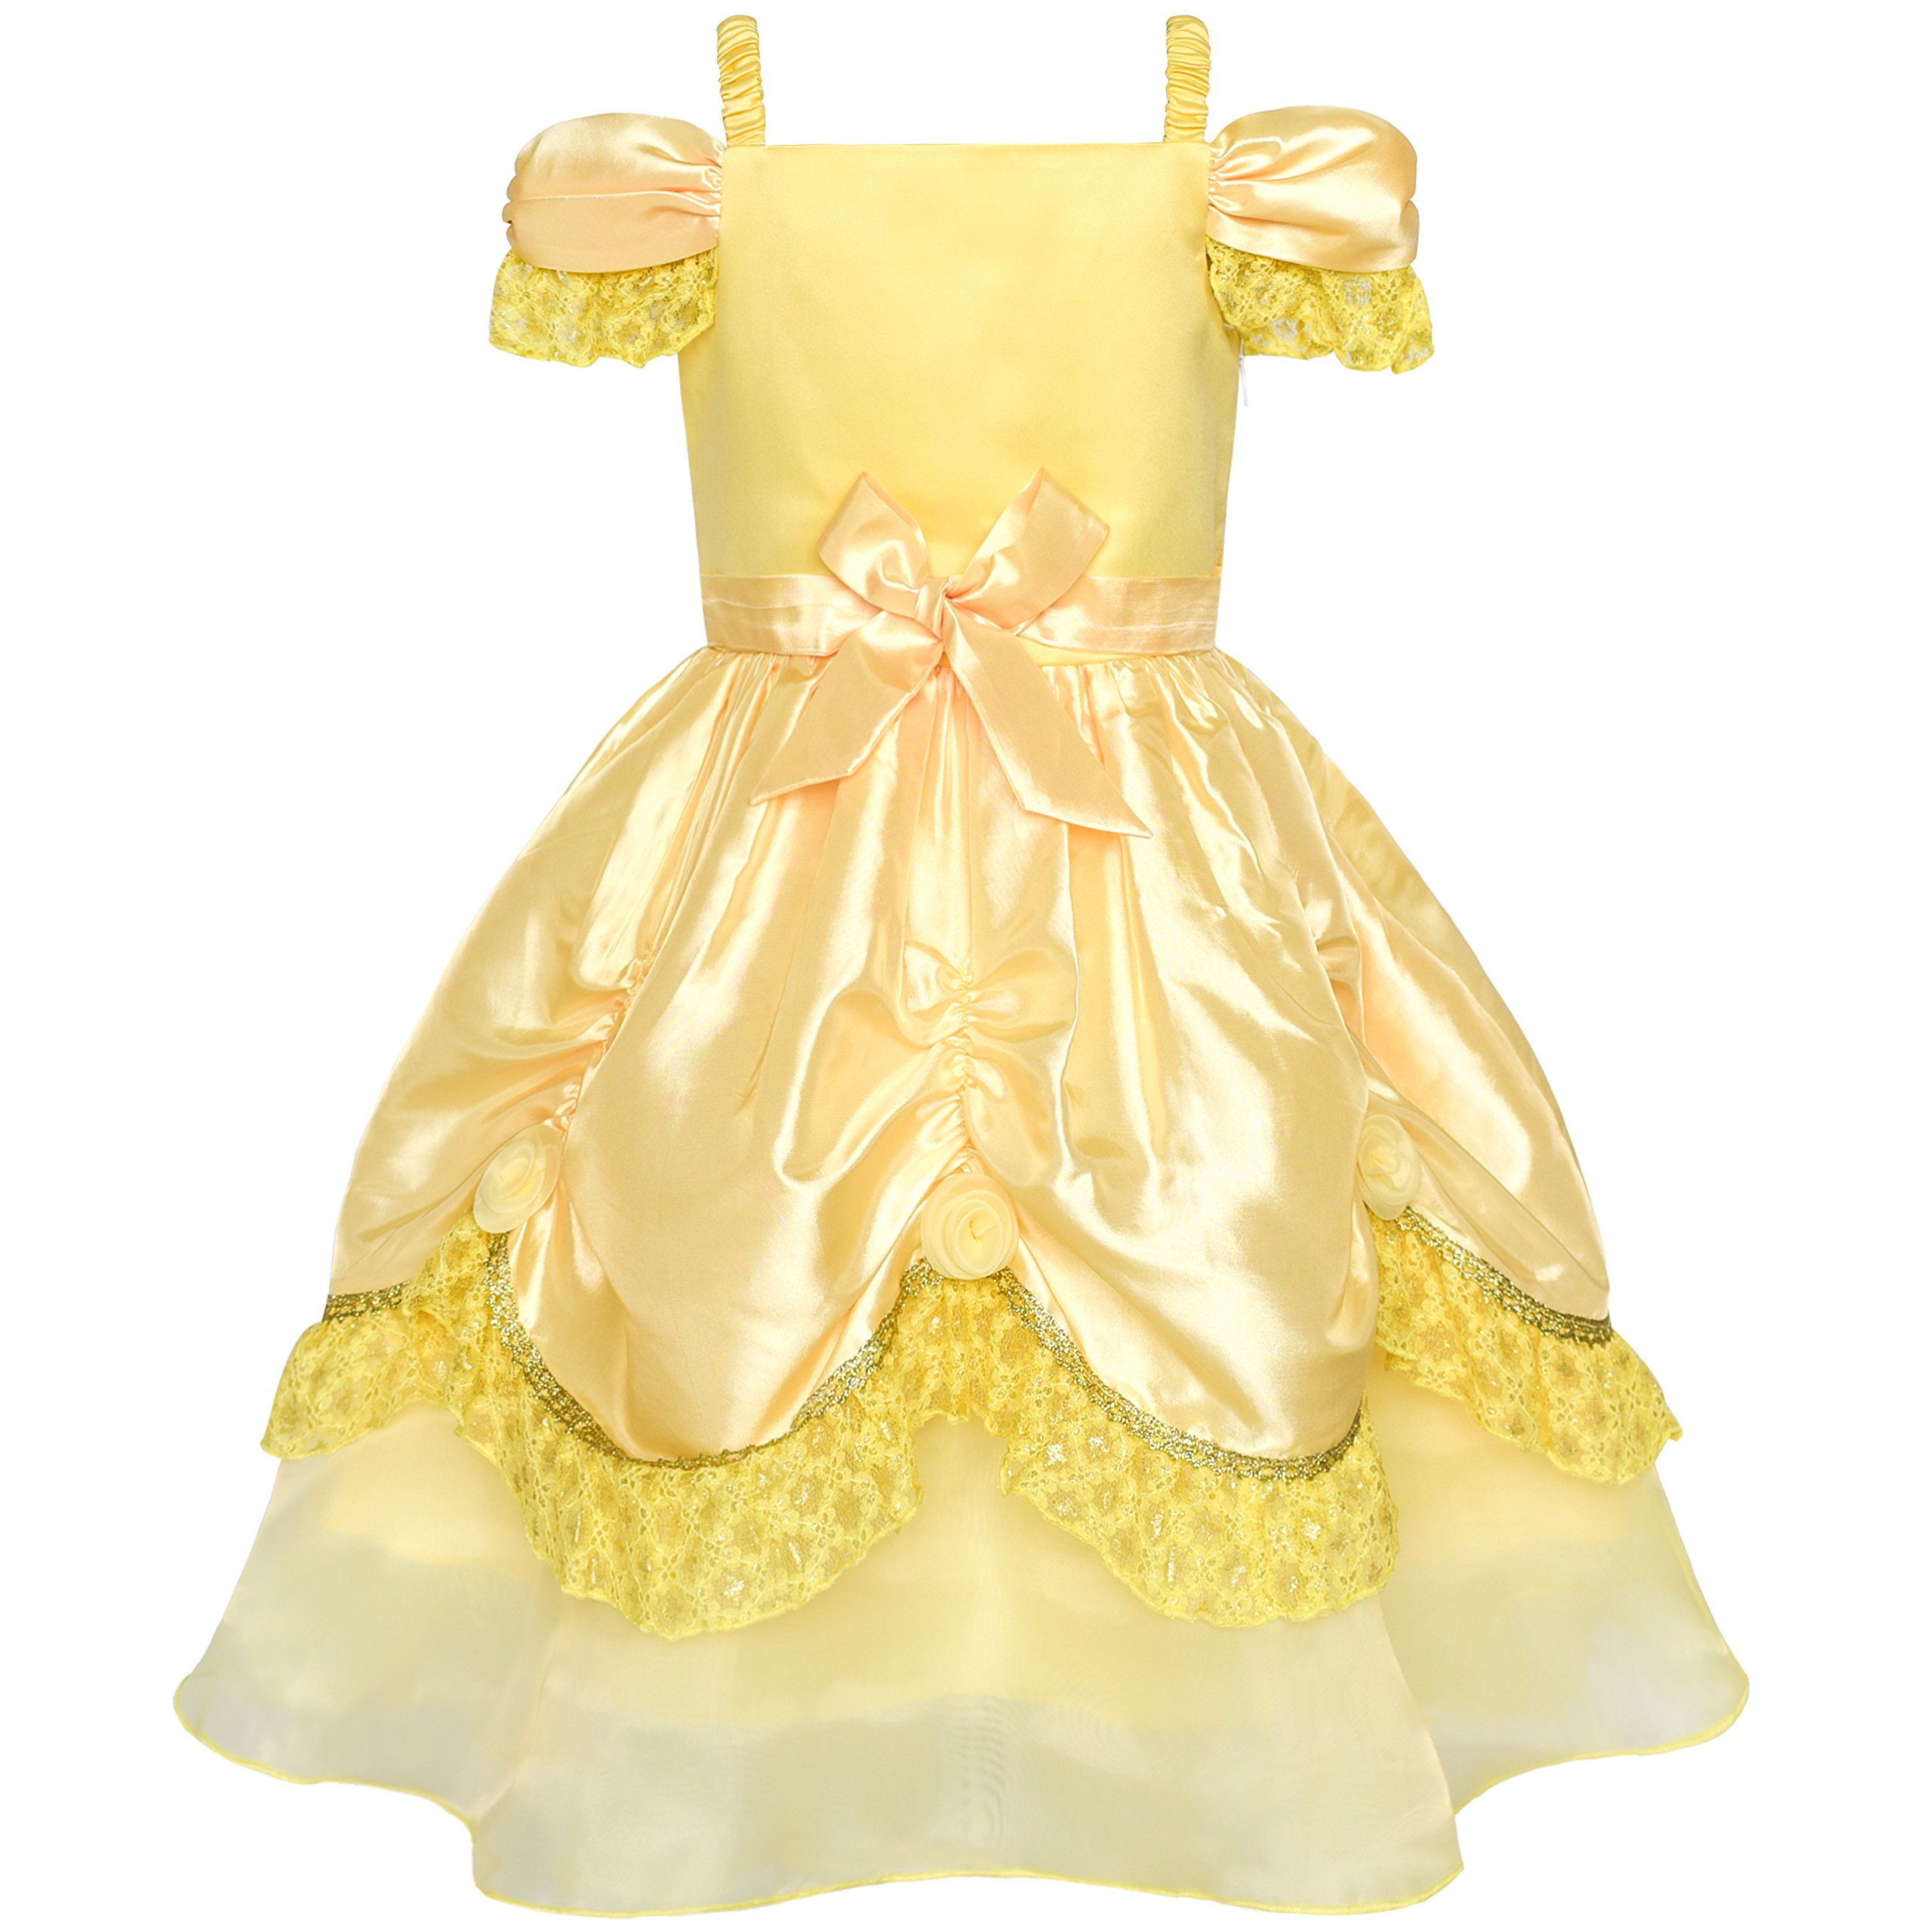 Girls Dress Yellow Princess Belle Costume Birthday Party Size 6 by Sunny Fashion (Image #2)